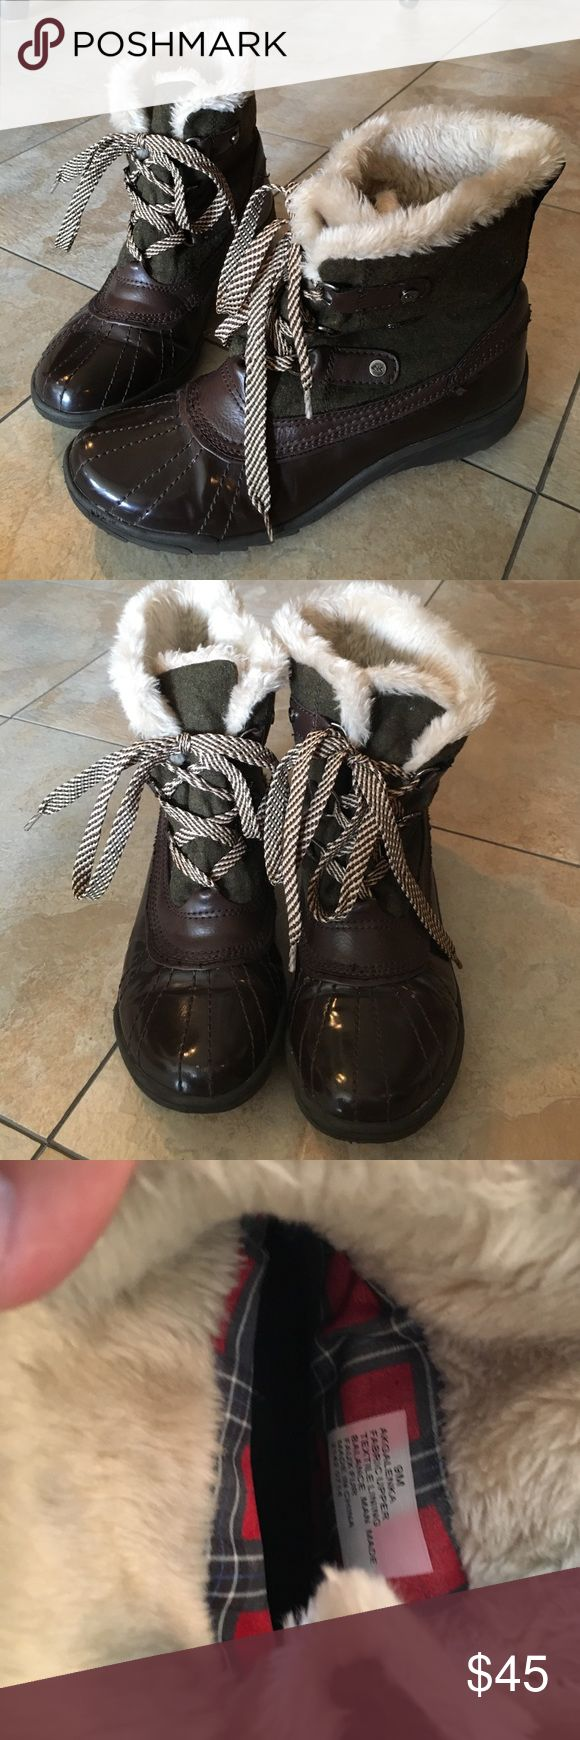 Anne Klein Sport snow boots Anne Klein Sport snow boots, brown with chevron shoe strings. Cream fur with red plaid interior. Great condition, only worn a handful of times! Anne Klein Shoes Winter & Rain Boots